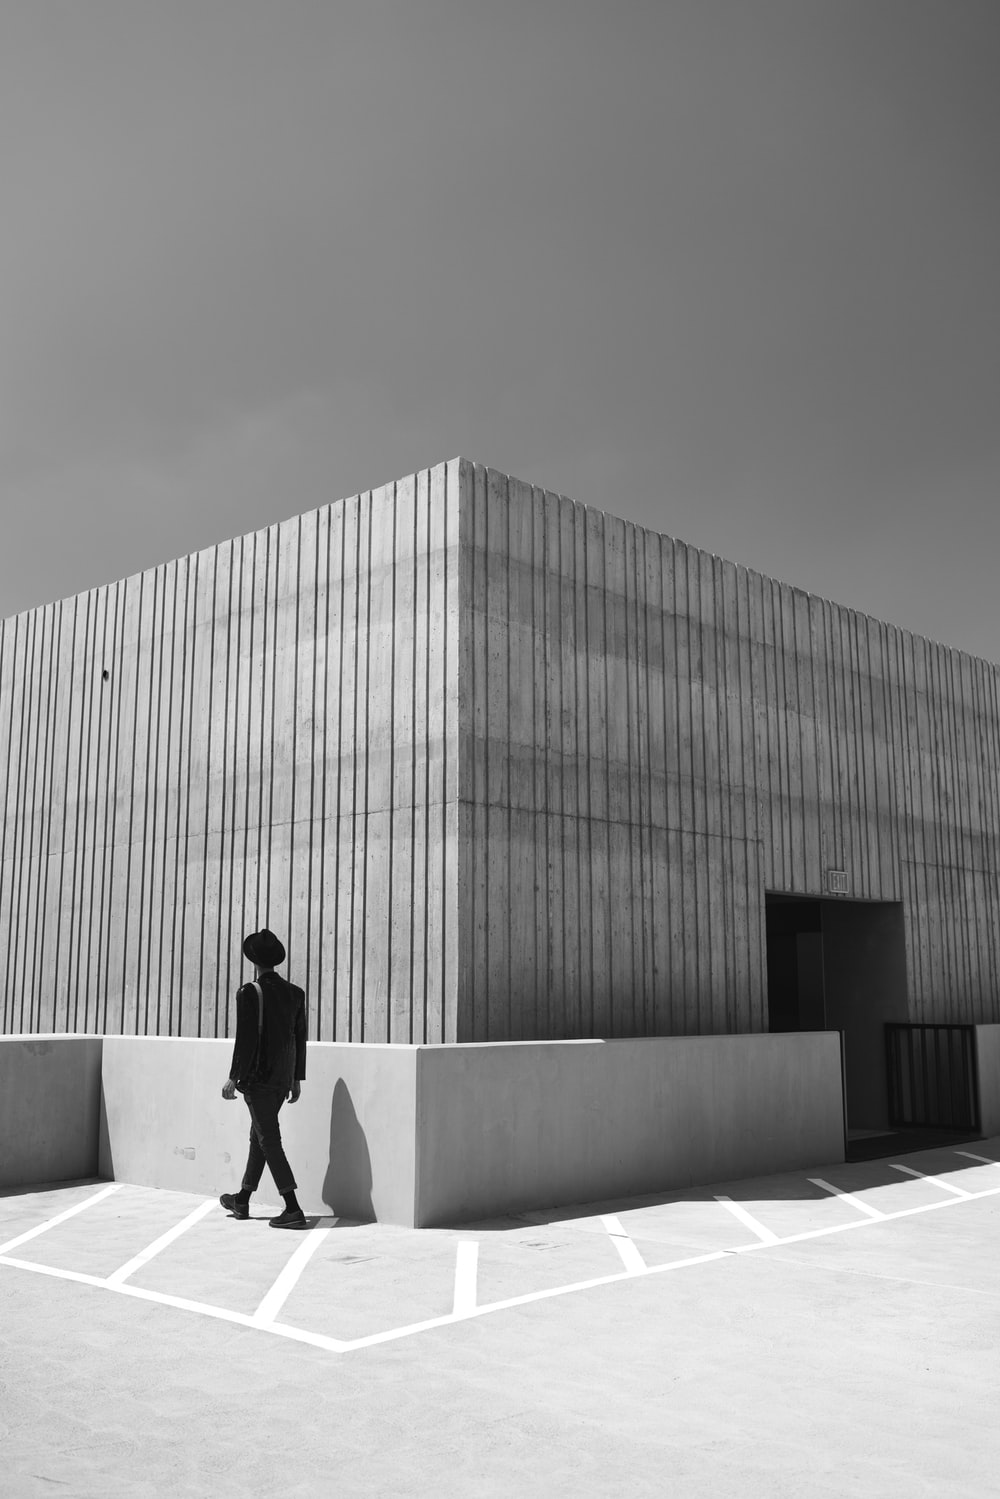 grayscale photo of man in black jacket and pants standing beside building